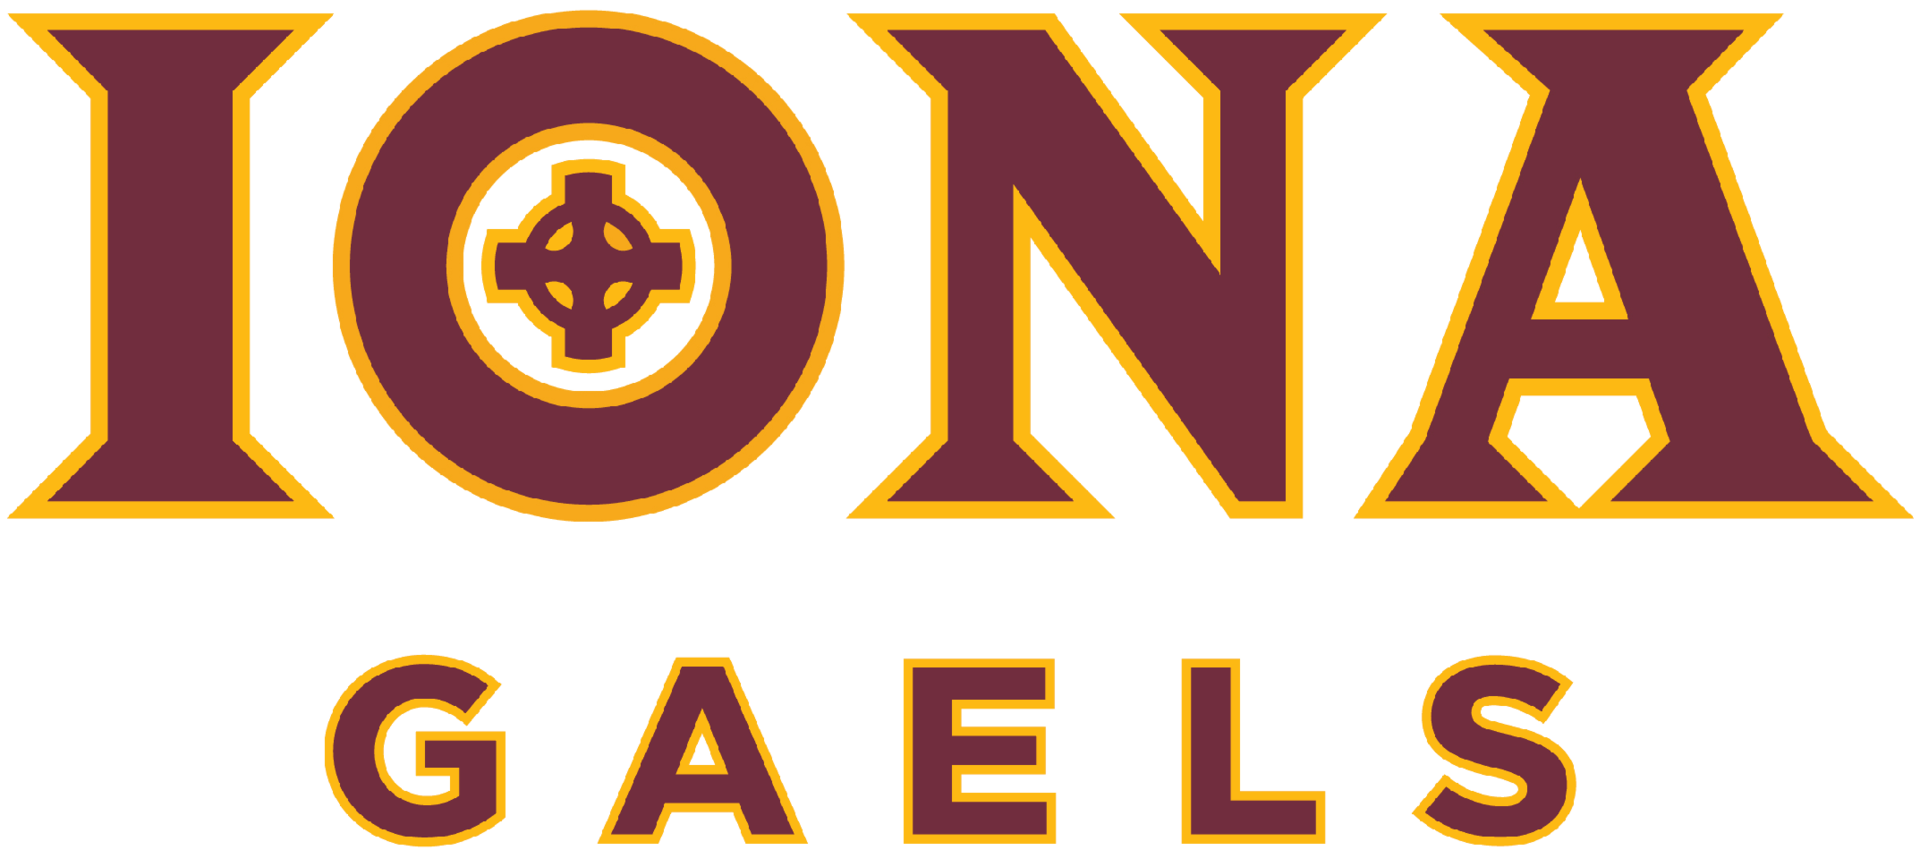 2014–15 Iona Gaels men's basketball team - Wikipedia